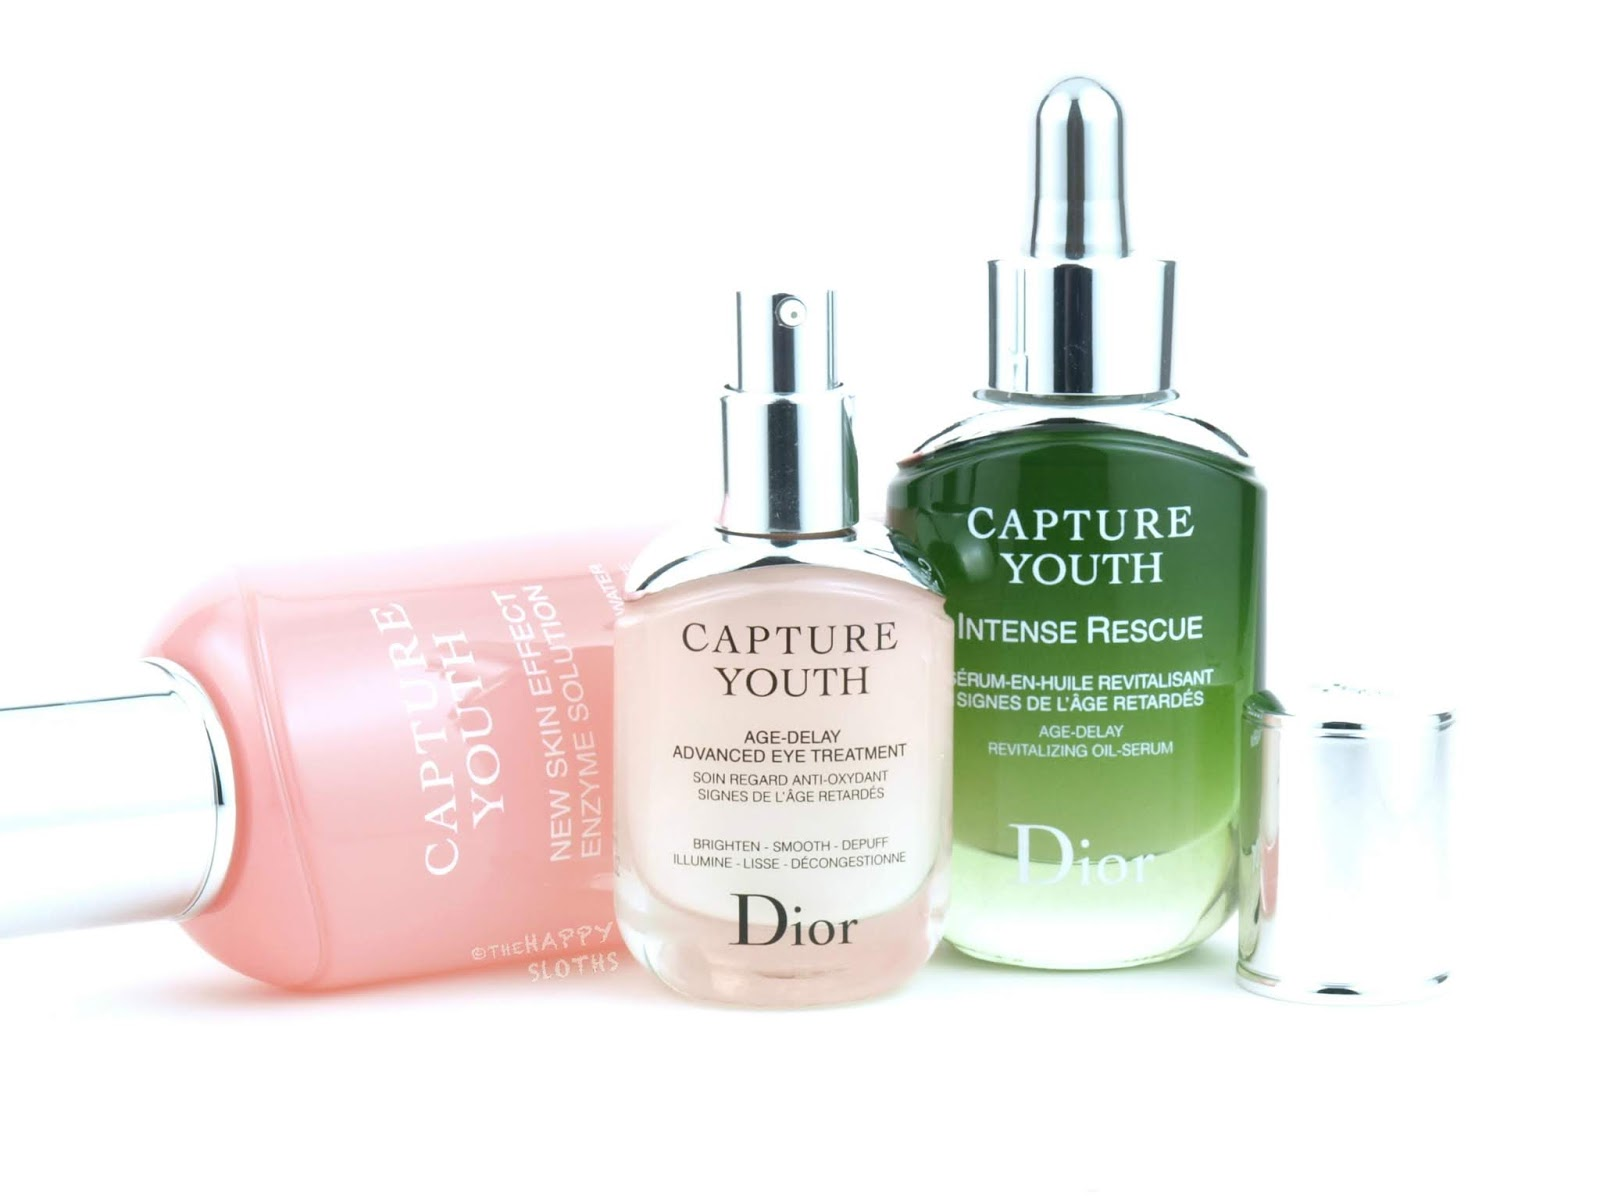 Dior | Youth Capture Age-Delay Resurfacing Water, Age-Delay Advanced Eye Treatment & Intense Rescue Age-Delay Revitalizing Oil-Serum: Review